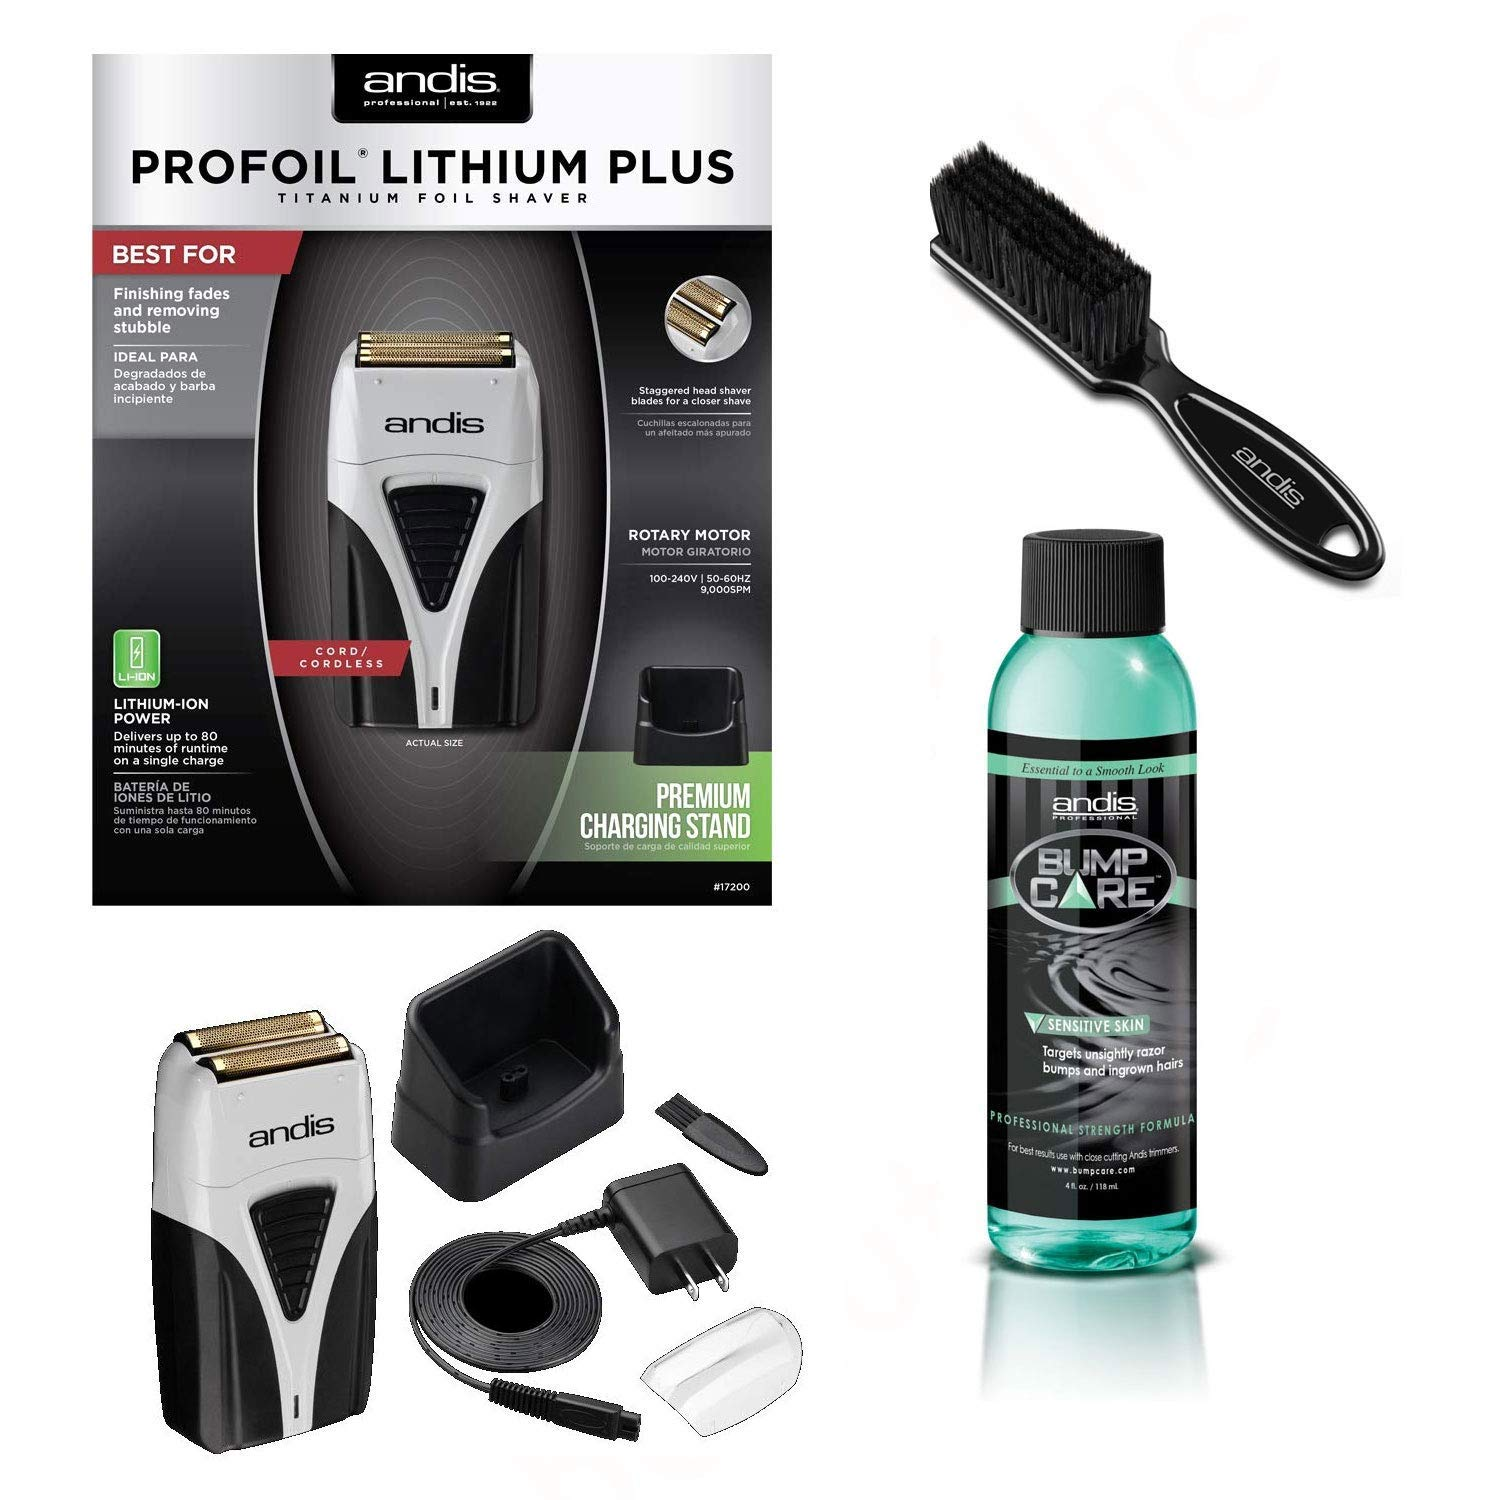 Andis 17200 Profoil Lithium Plus Shaver Brush, Sensitive Bump Care for ingrown hairs